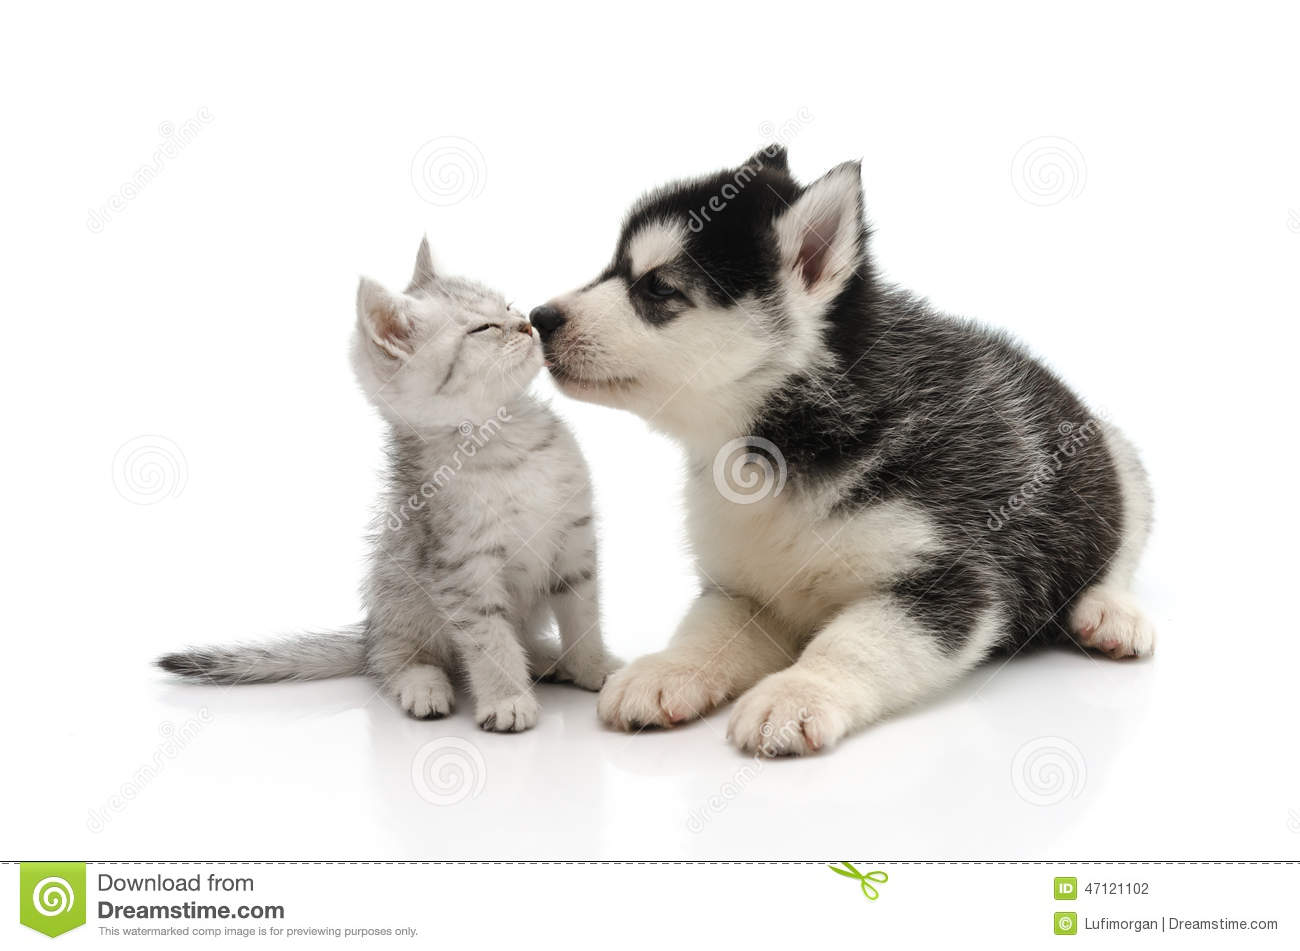 Cute puppies and kittens kissing